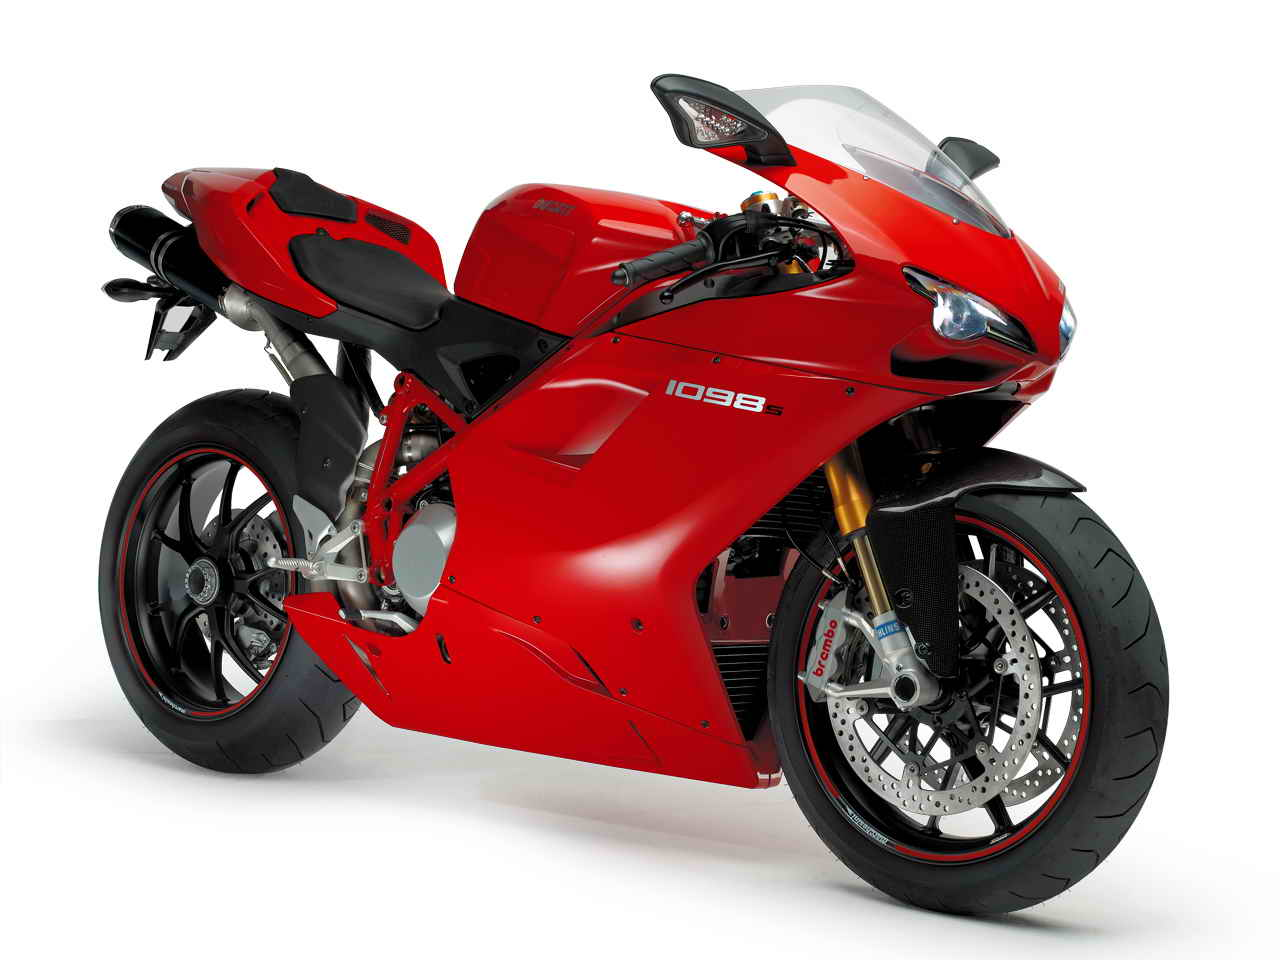 2007 ducati 1098 s review gallery top speed. Black Bedroom Furniture Sets. Home Design Ideas